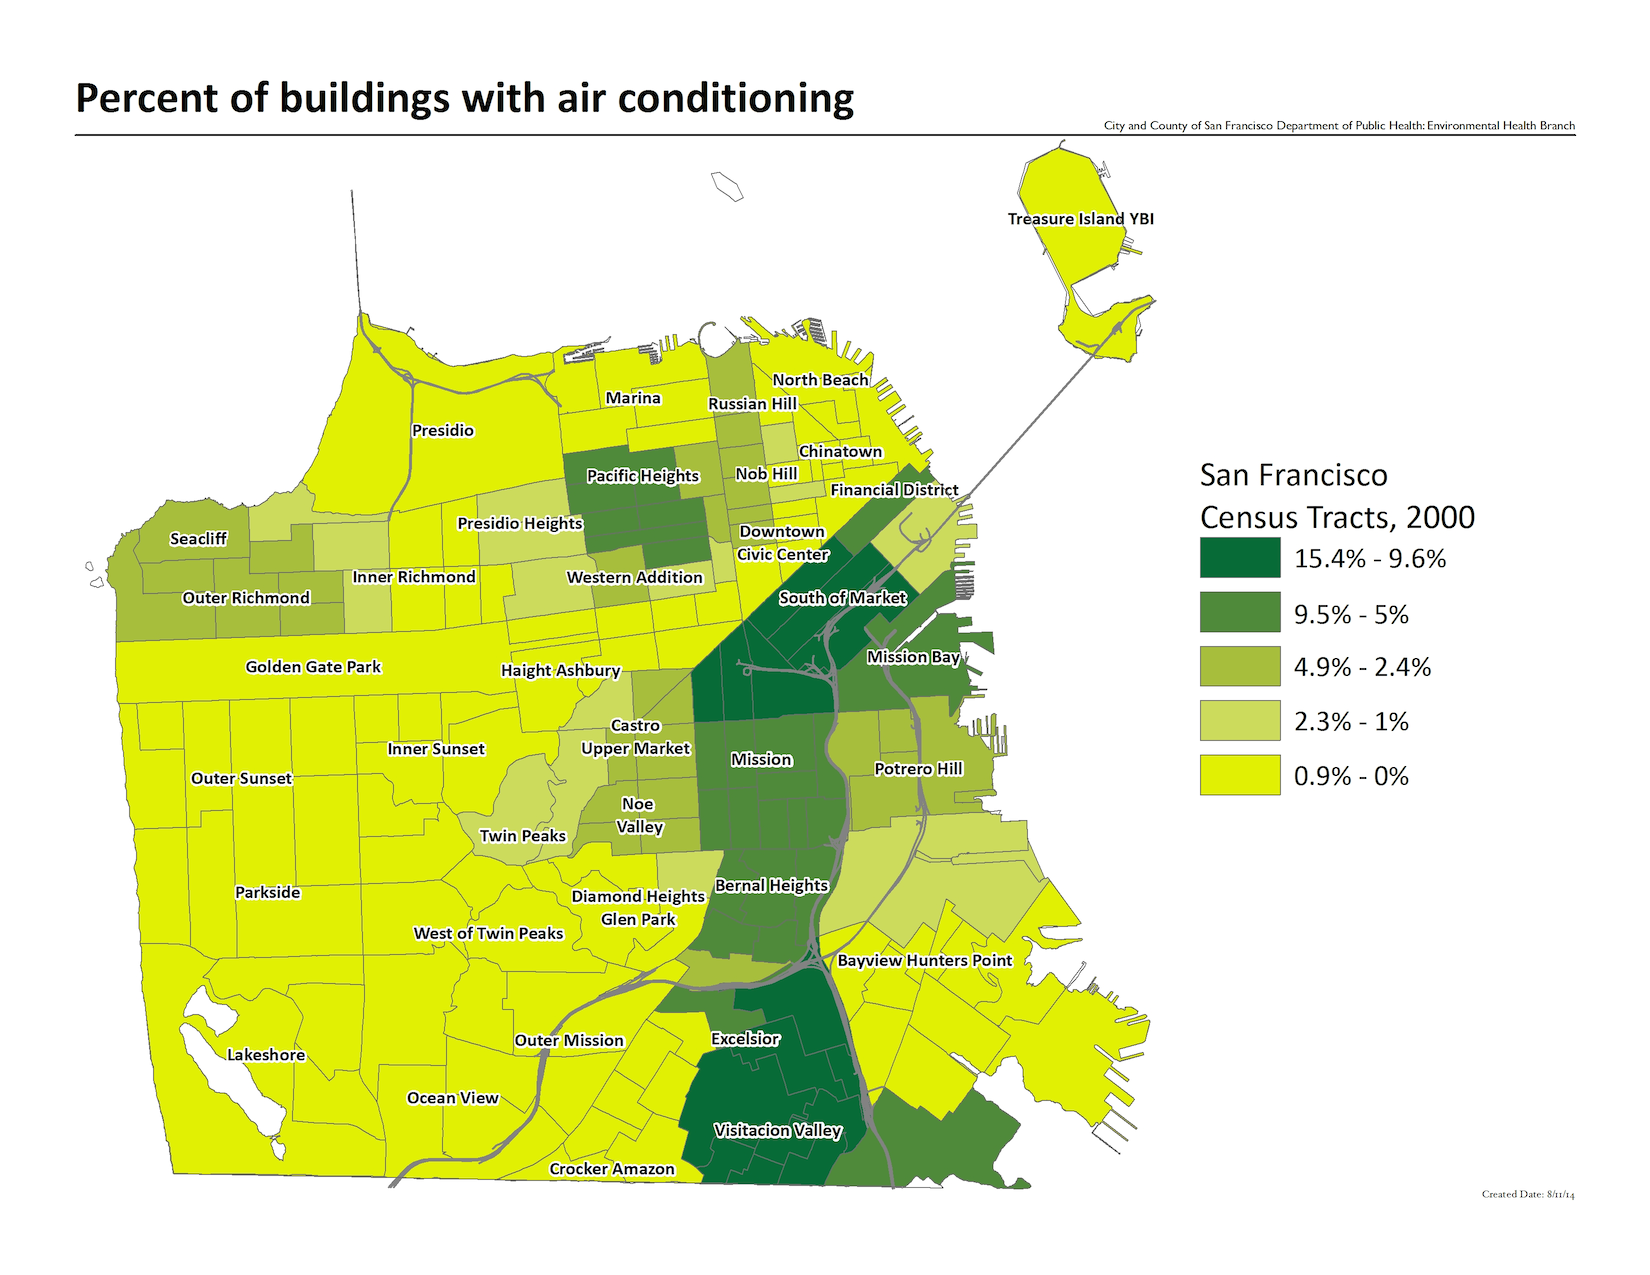 Map of the percent of buildings with air conditioning, by year 2000 census tracts. The mid-market and visitacion valley neighborhoods have the highest concentrations.